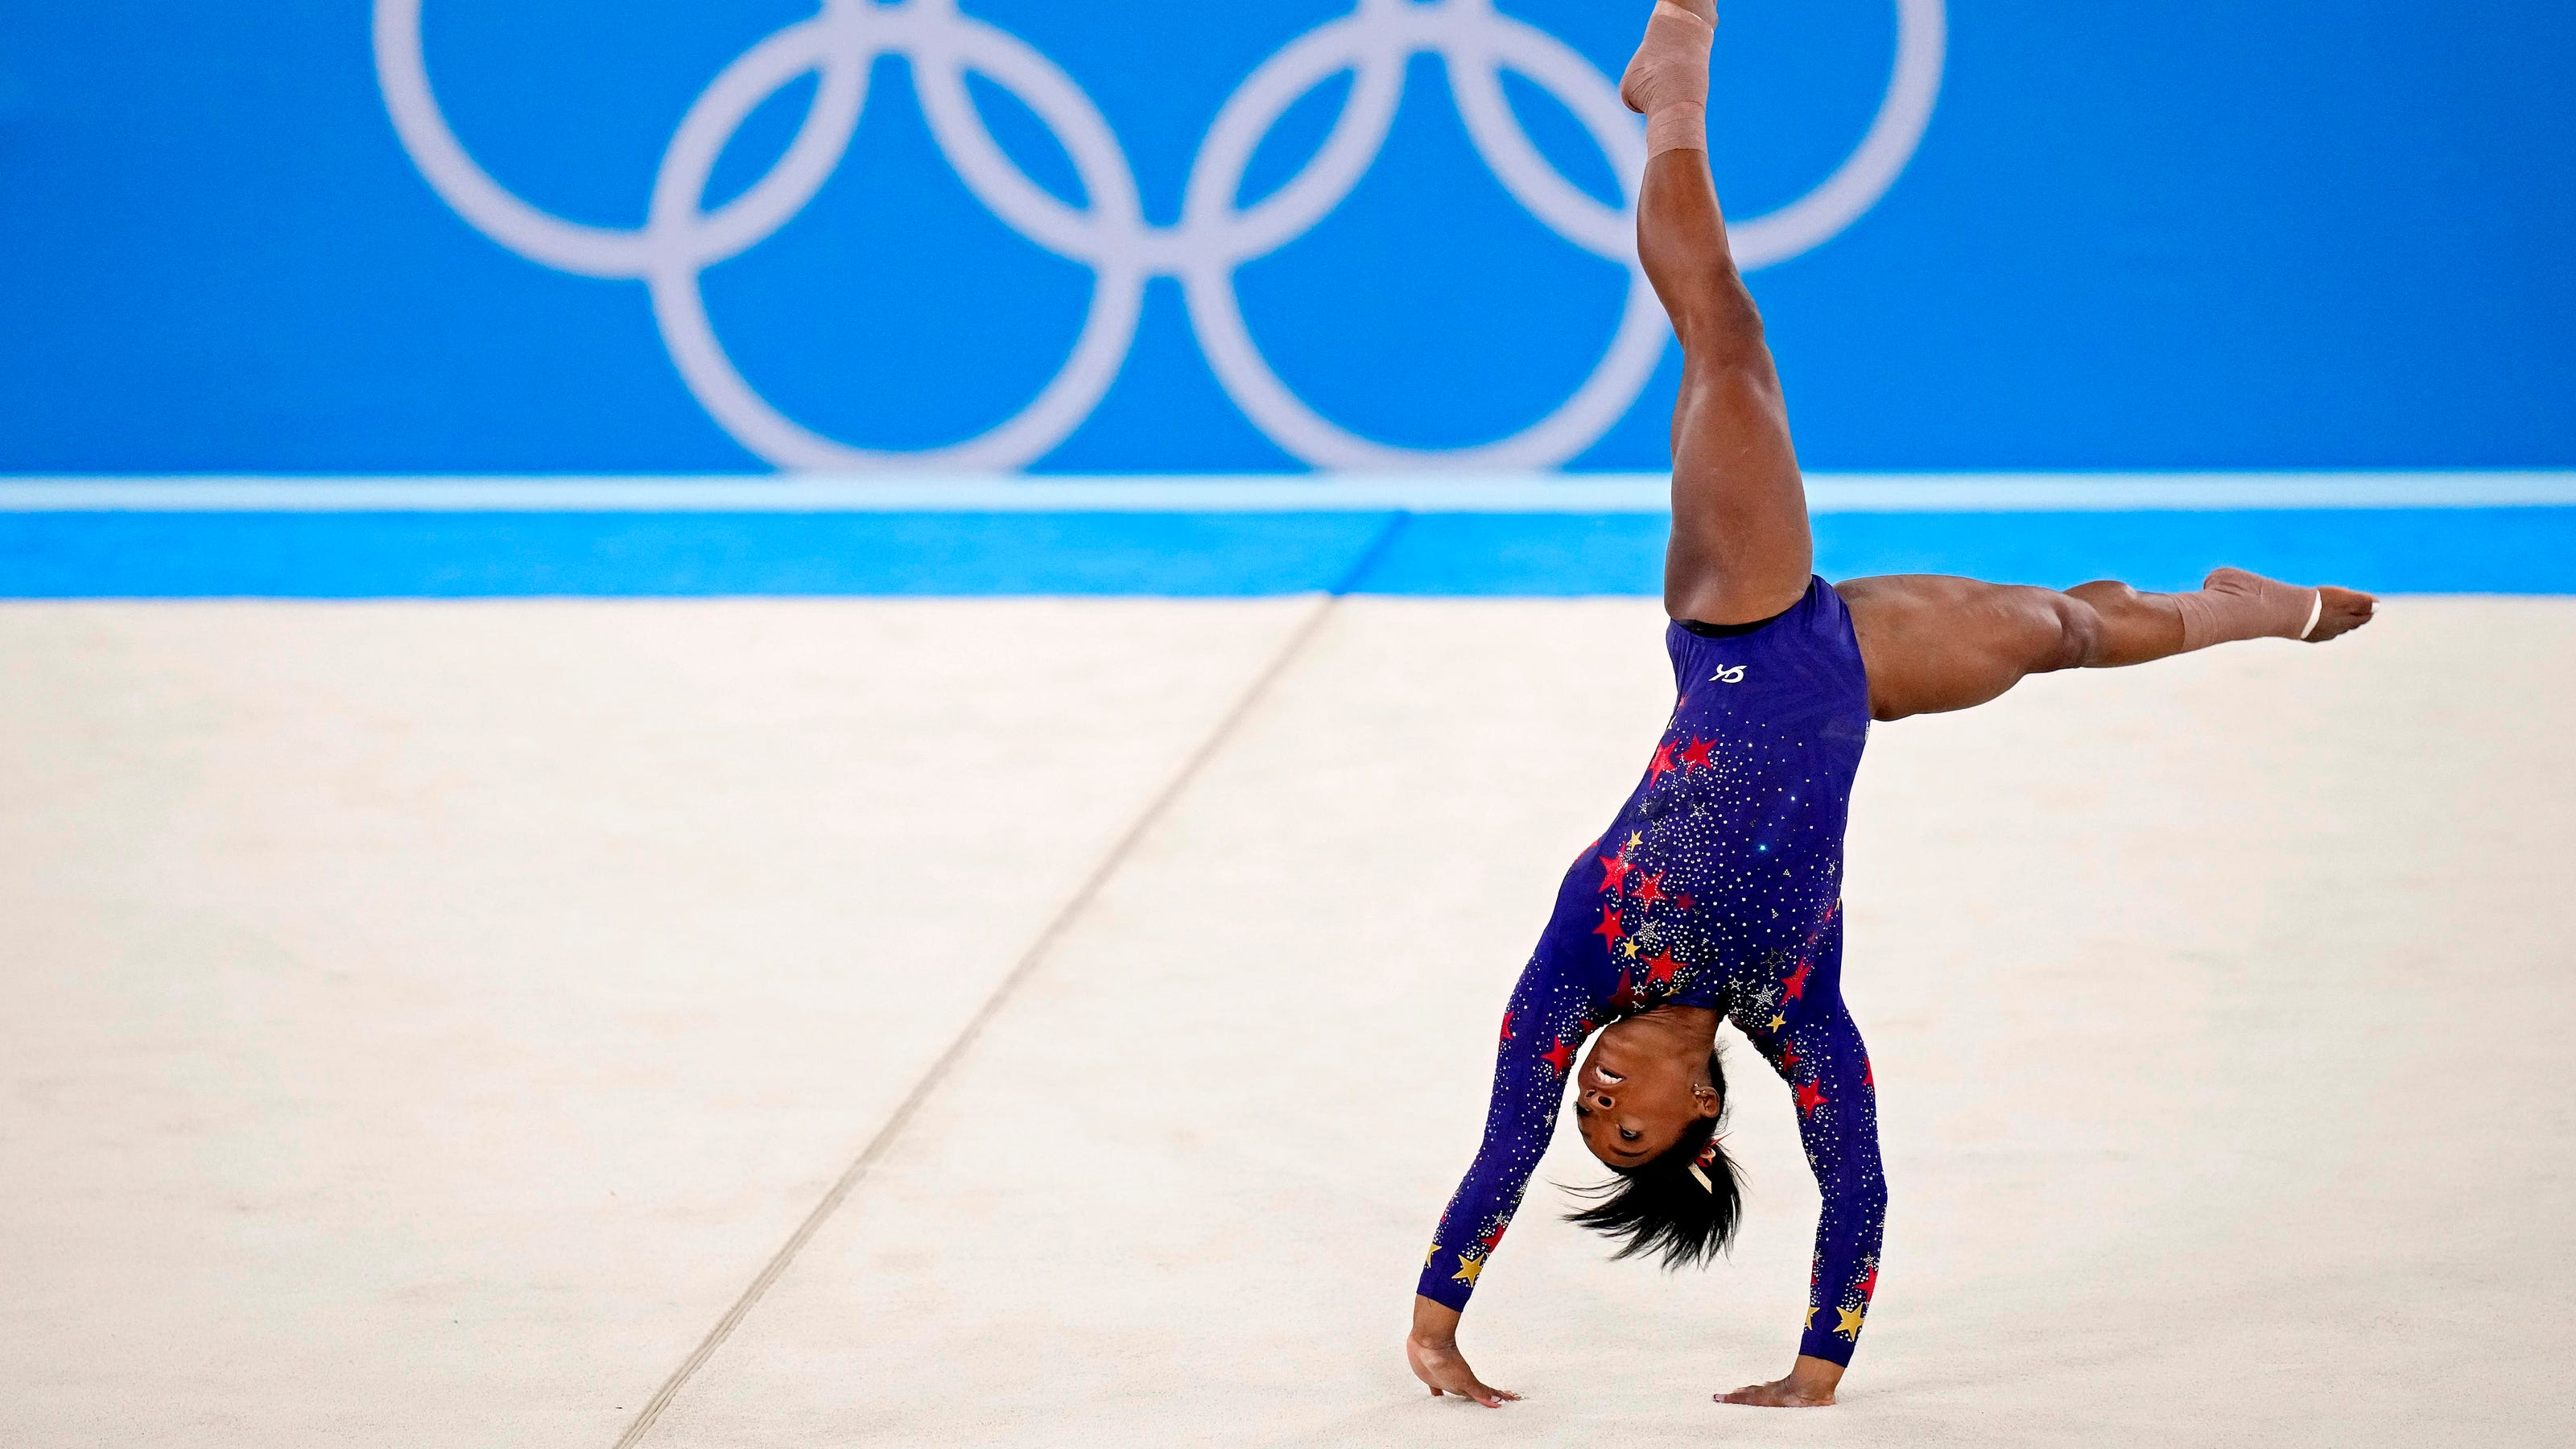 Live updates from Tokyo Olympics: Simone Biles, women's gymnastics up next in fight for team gold